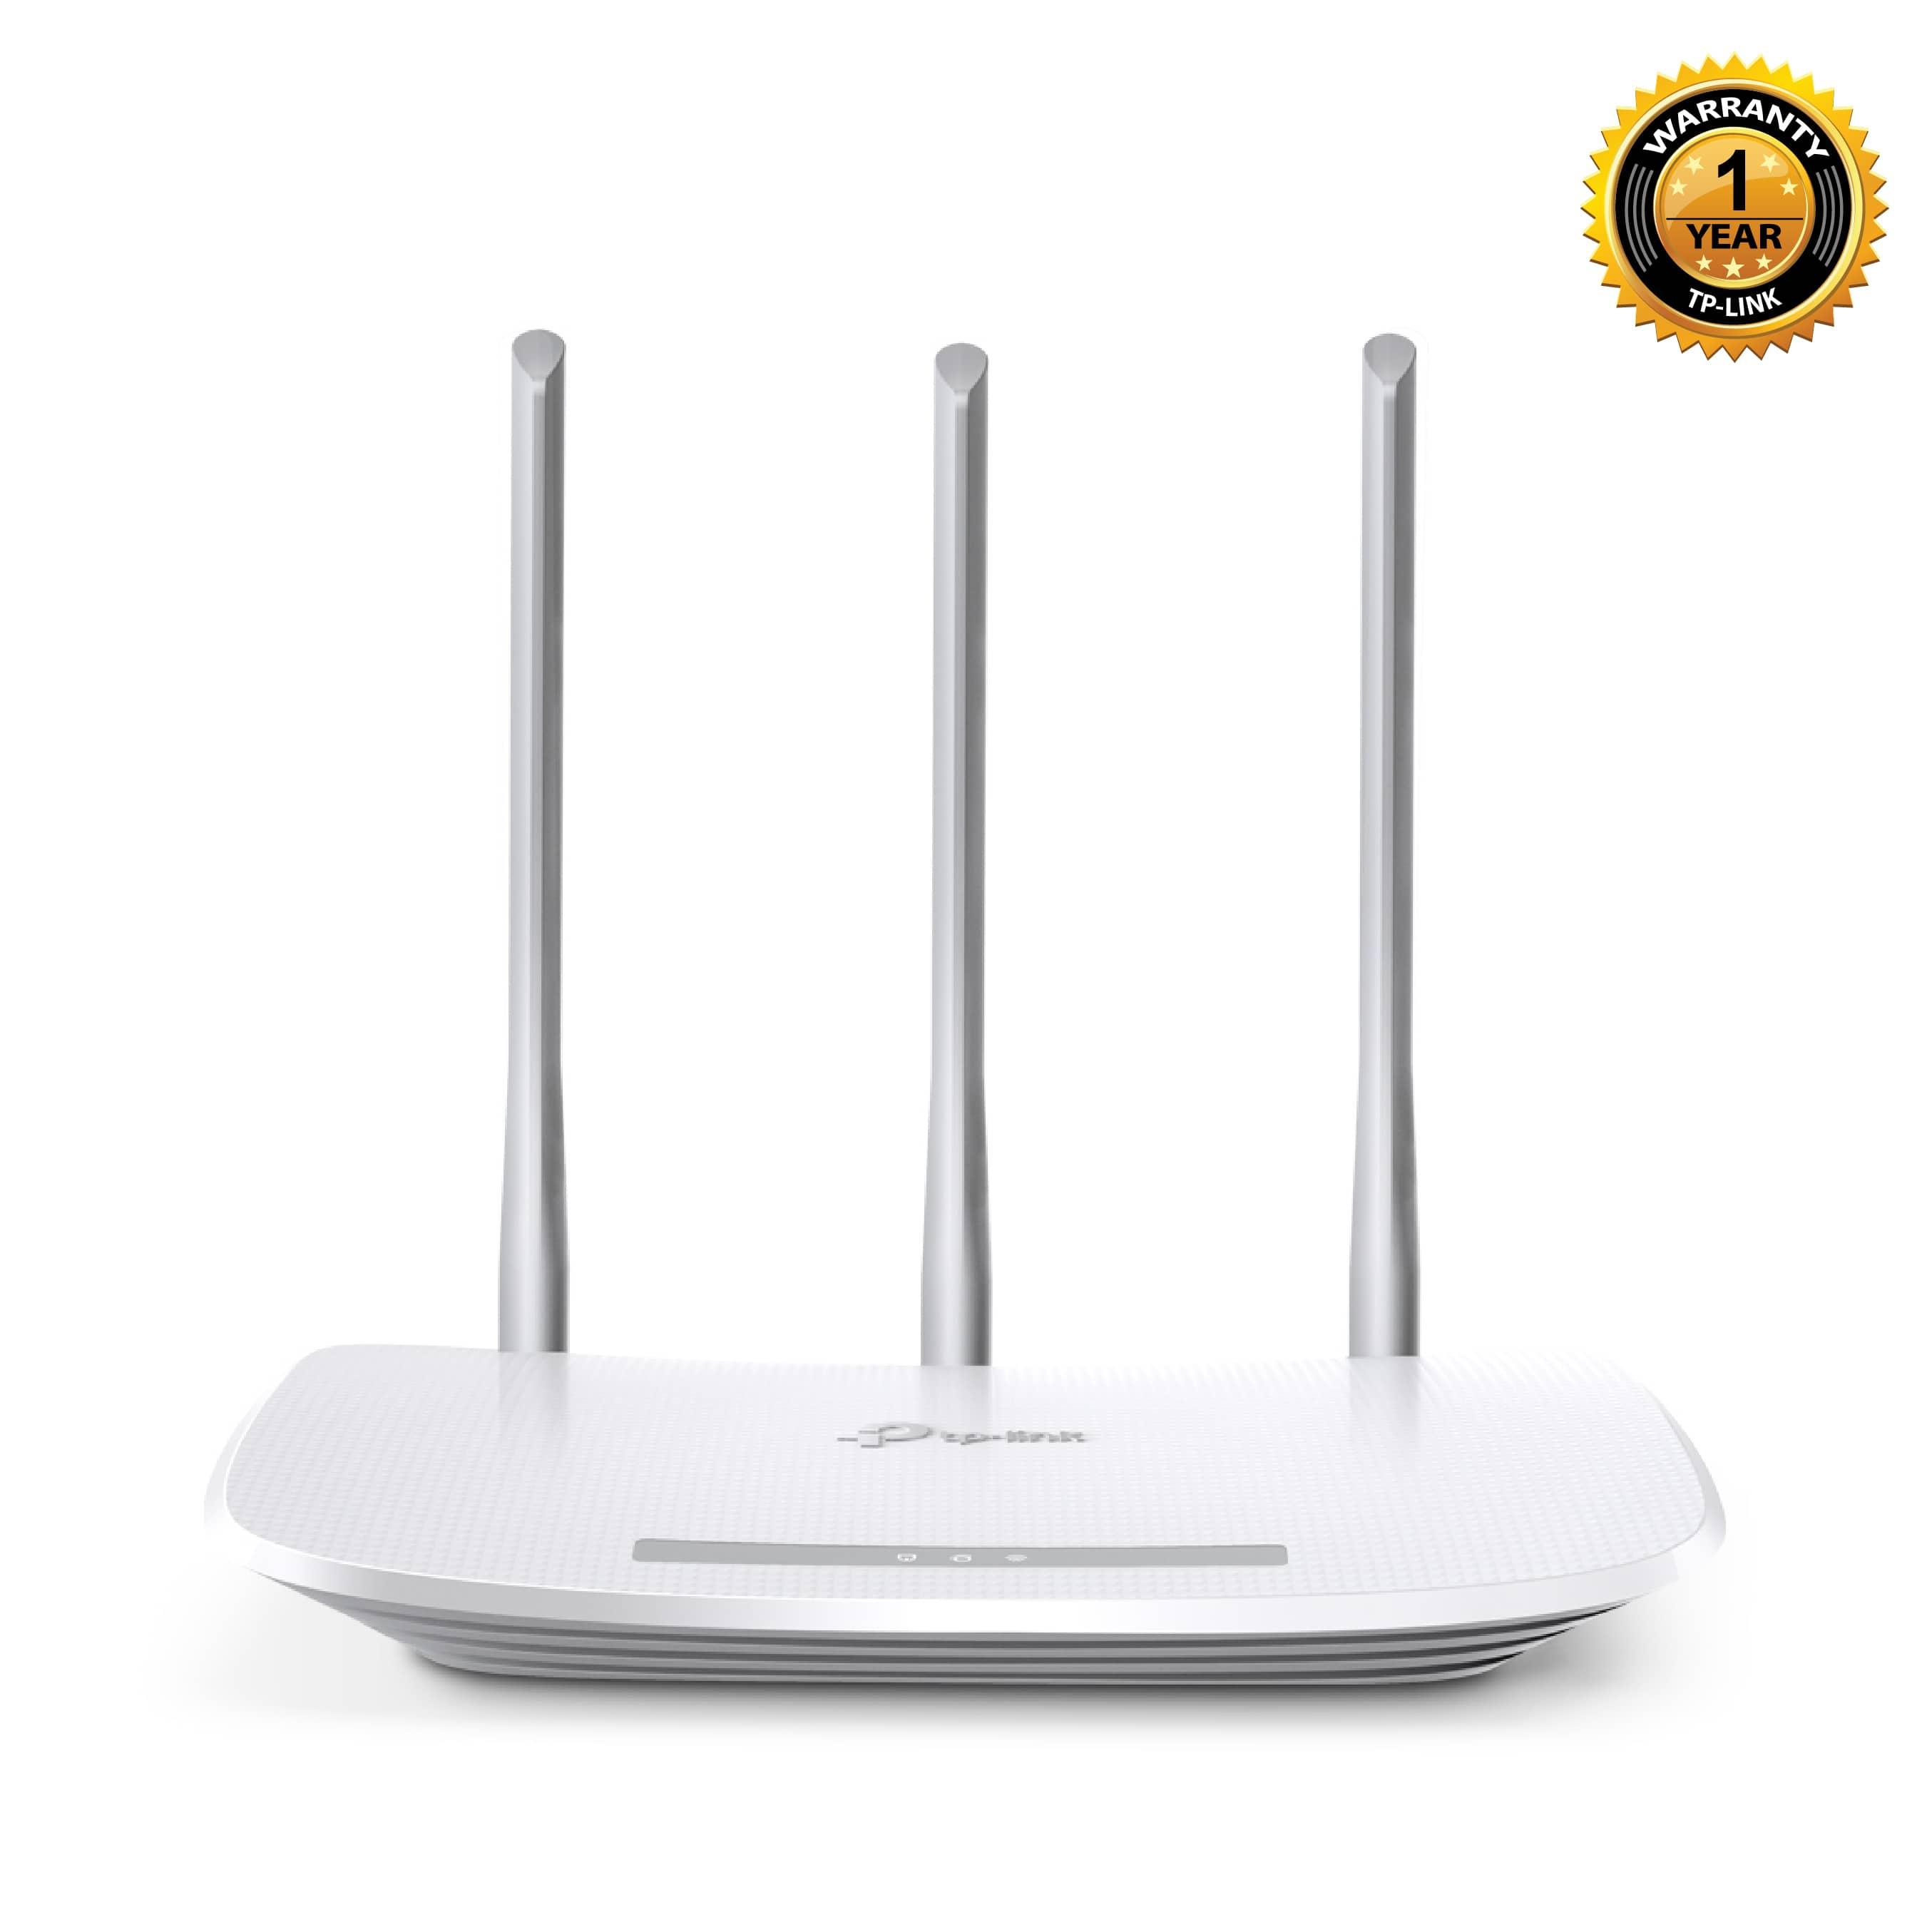 TL-WR845N 300Mbps Wireless Router - White